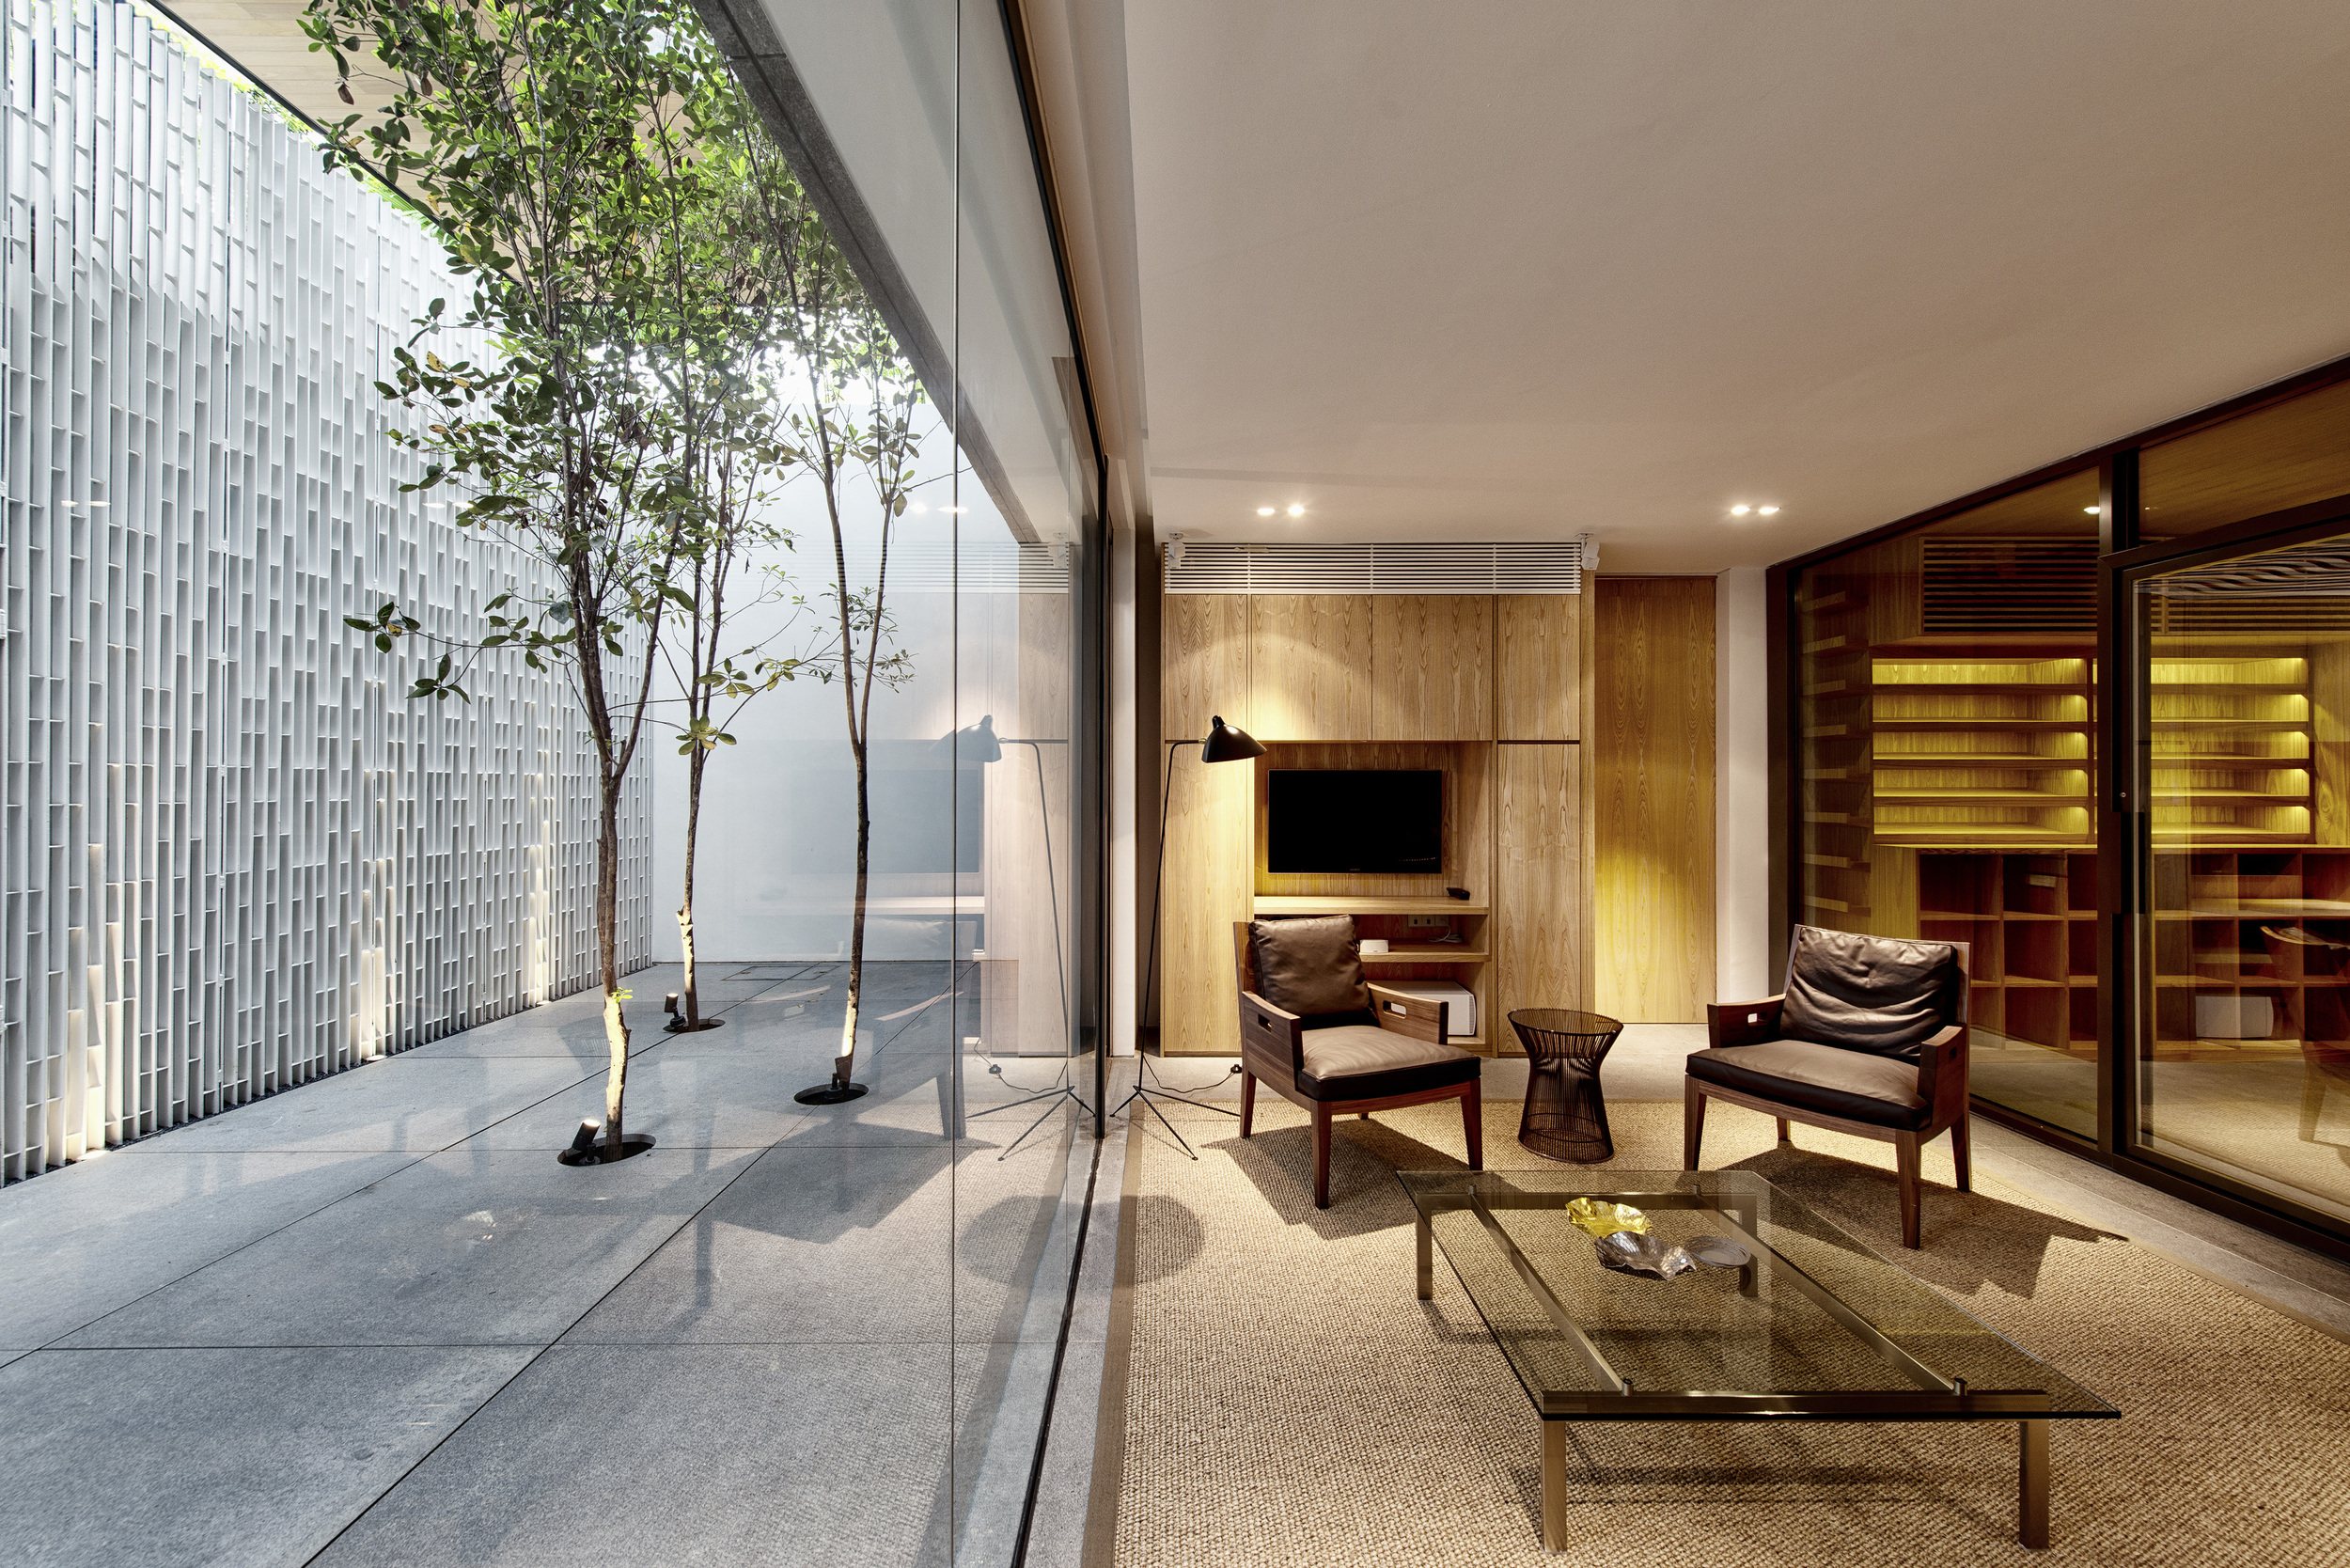 The Basement Courtyard, Lounge and Wine Cellar